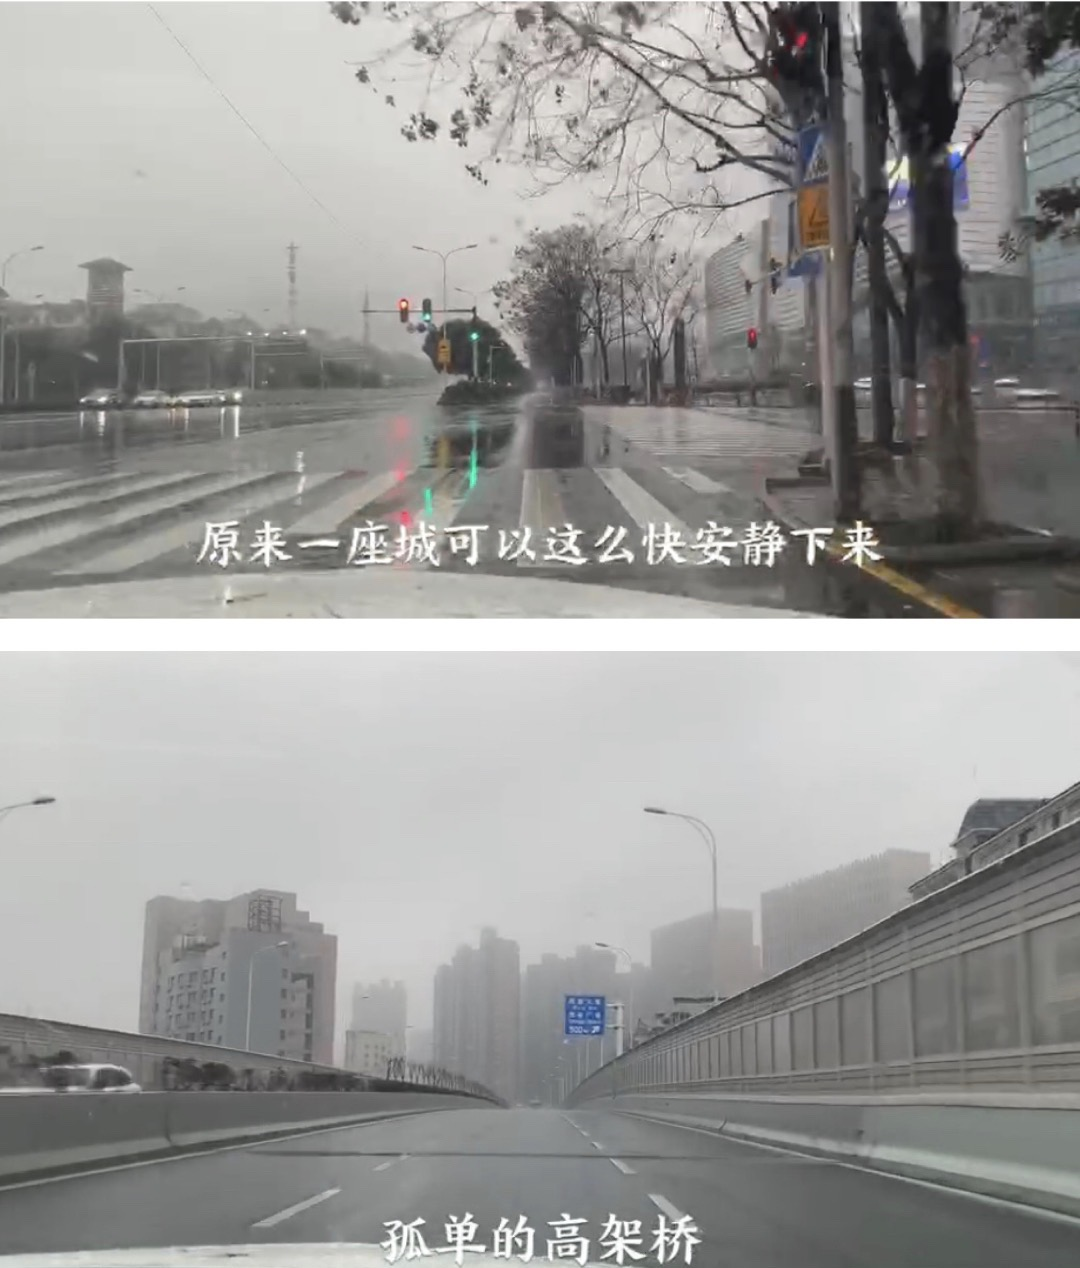 The streets were empty. In my 29 years of living in Wuhan, I've never seen it look so deserted before.